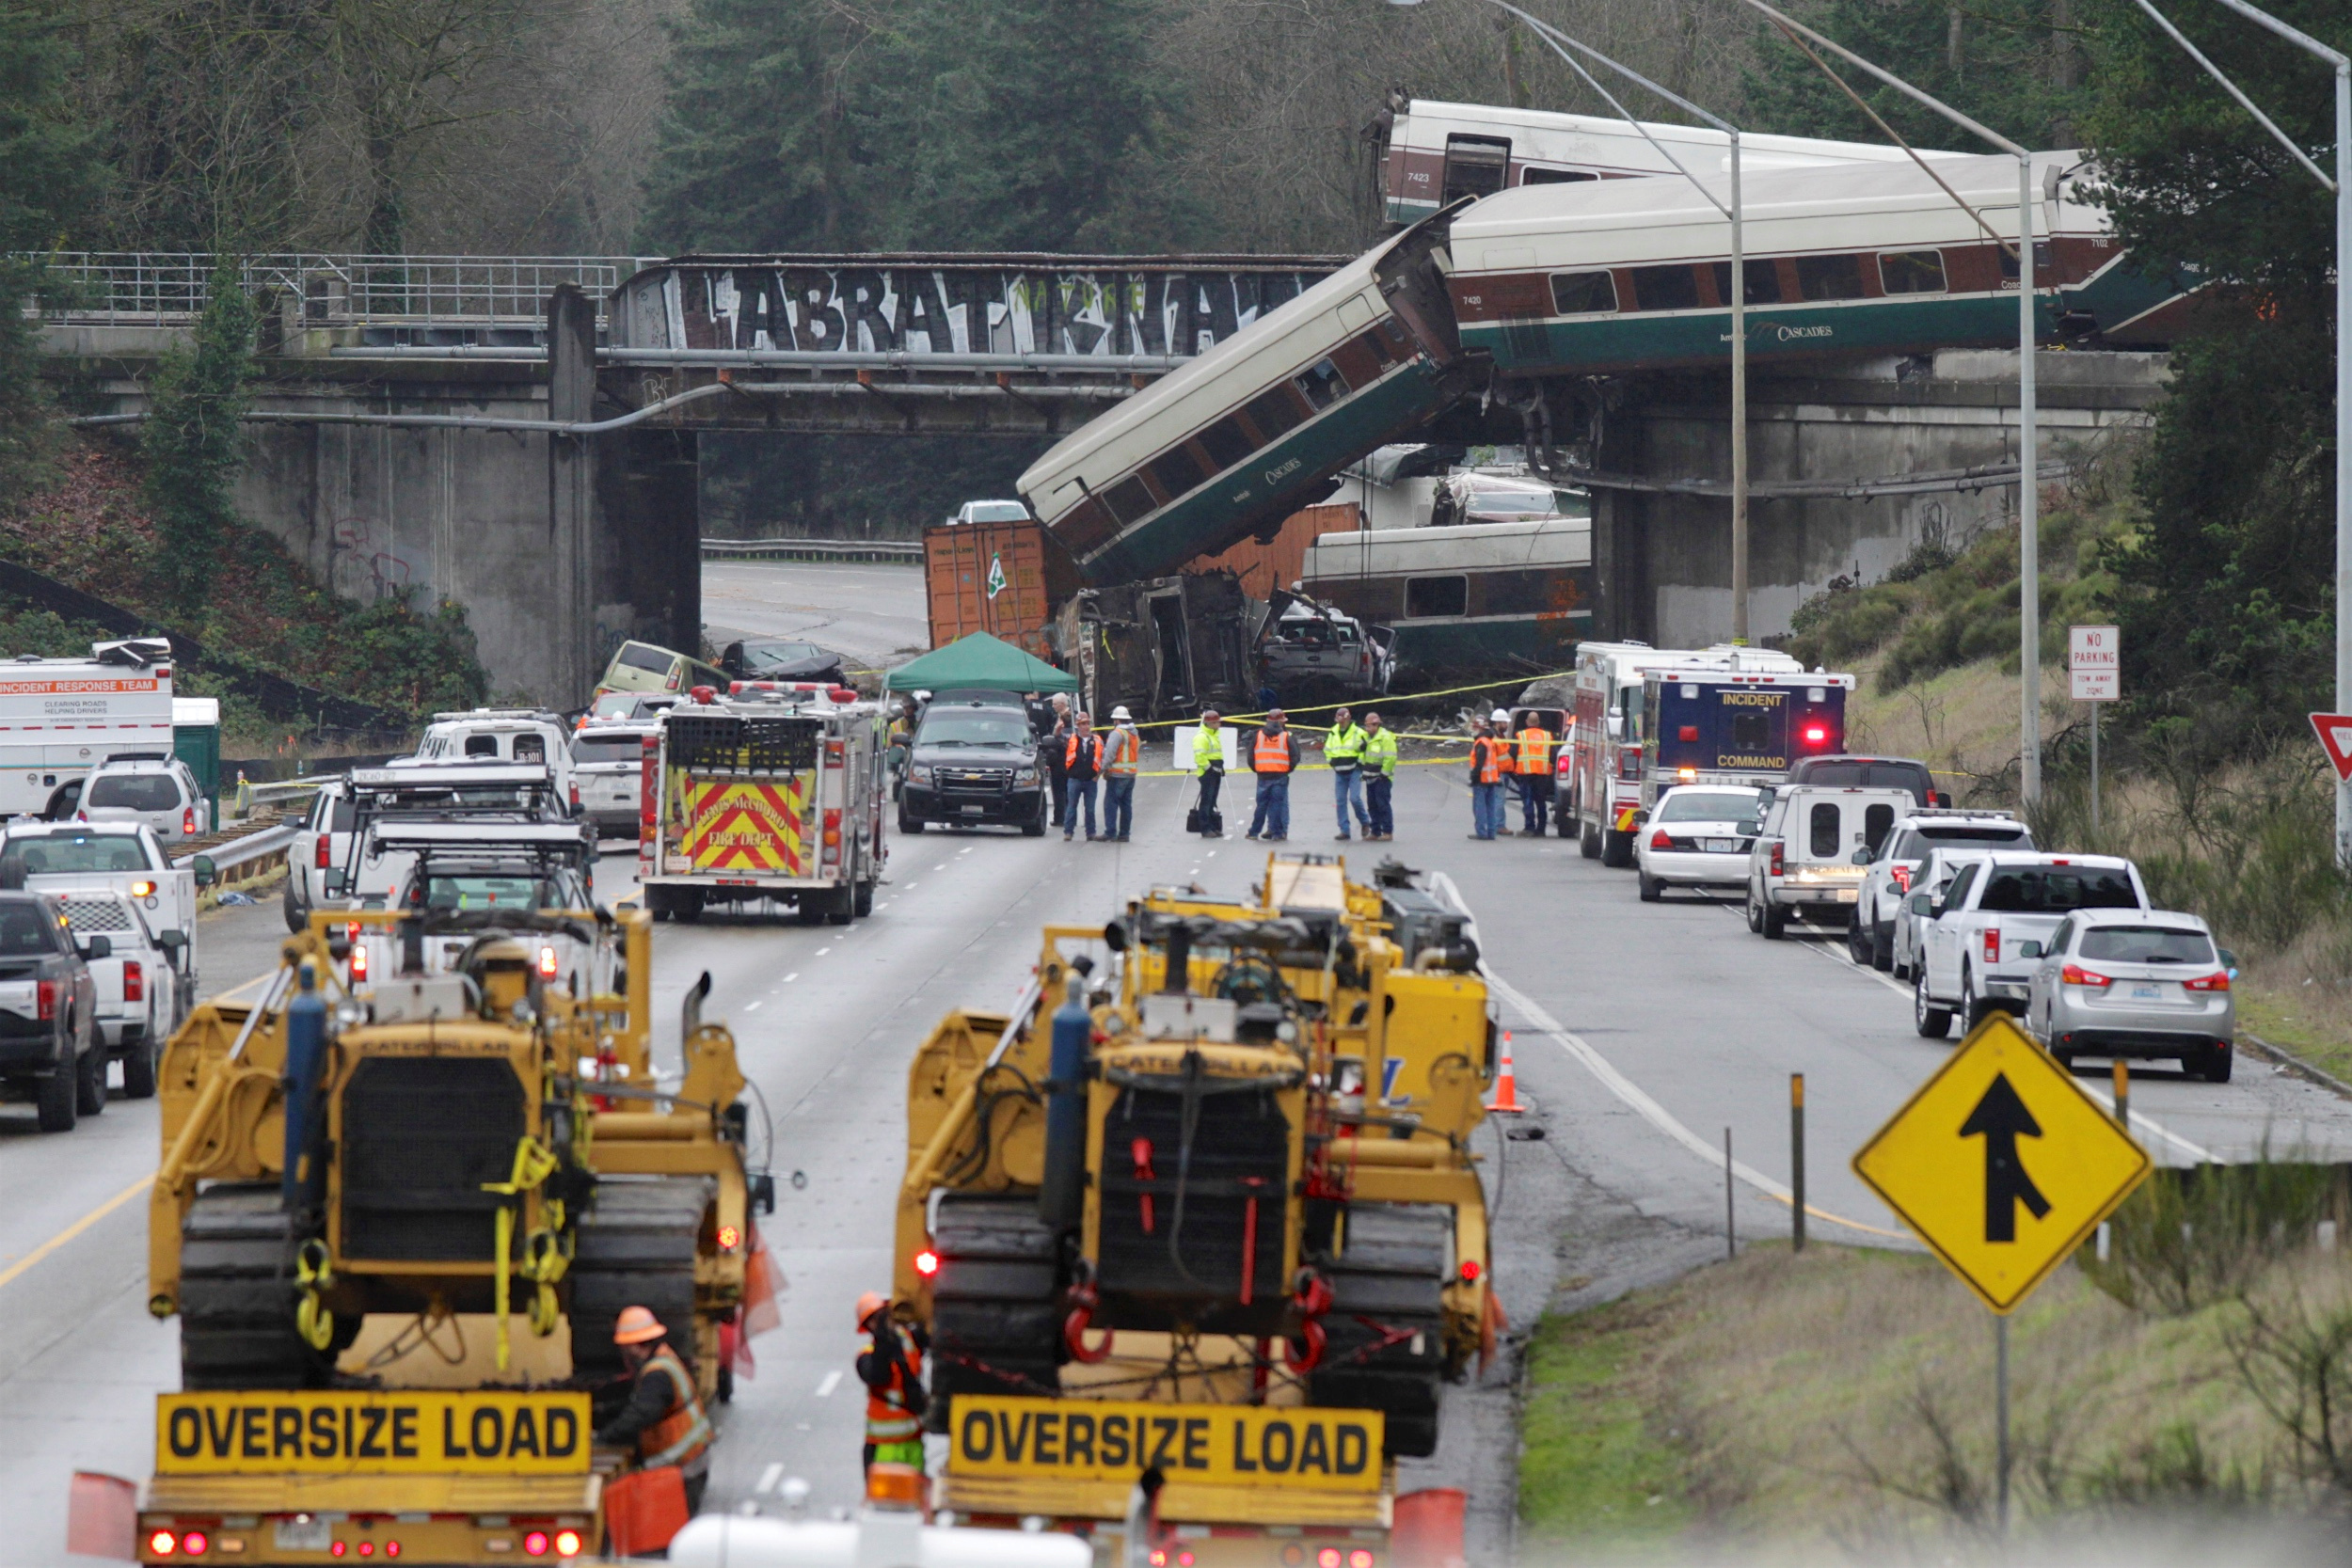 FILE PHOTO: Rescue personnel and equipment are seen at the scene where an Amtrak passenger train derailed in DuPont